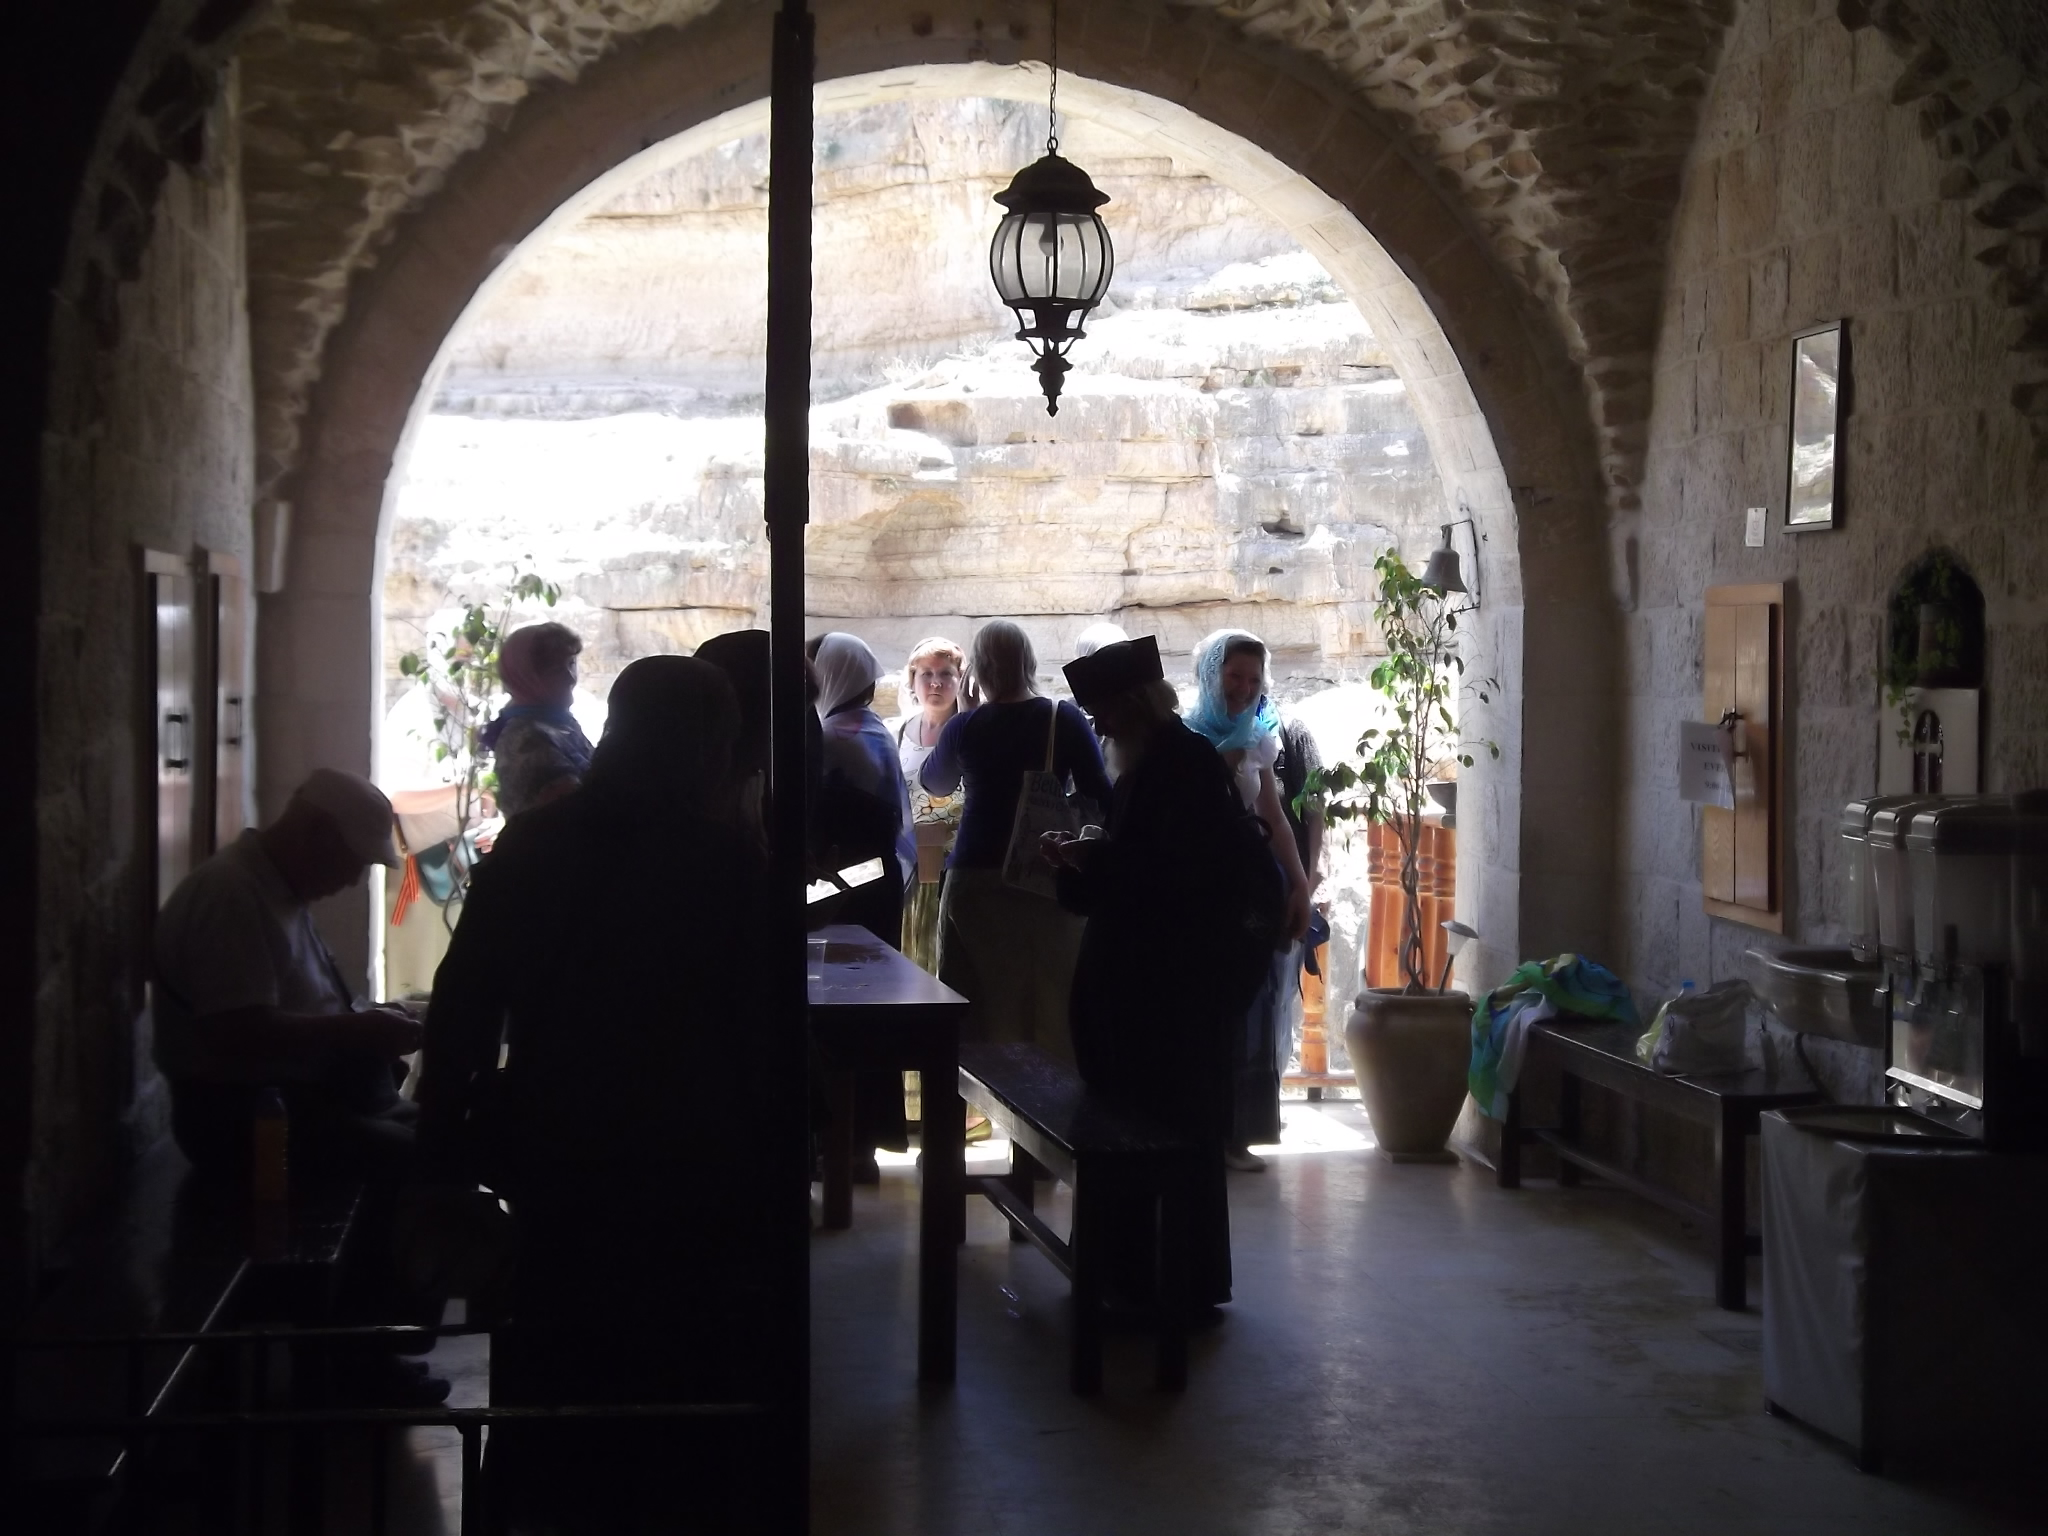 Receiving Warm Hospitality from the Monks of Saint George's Monastery